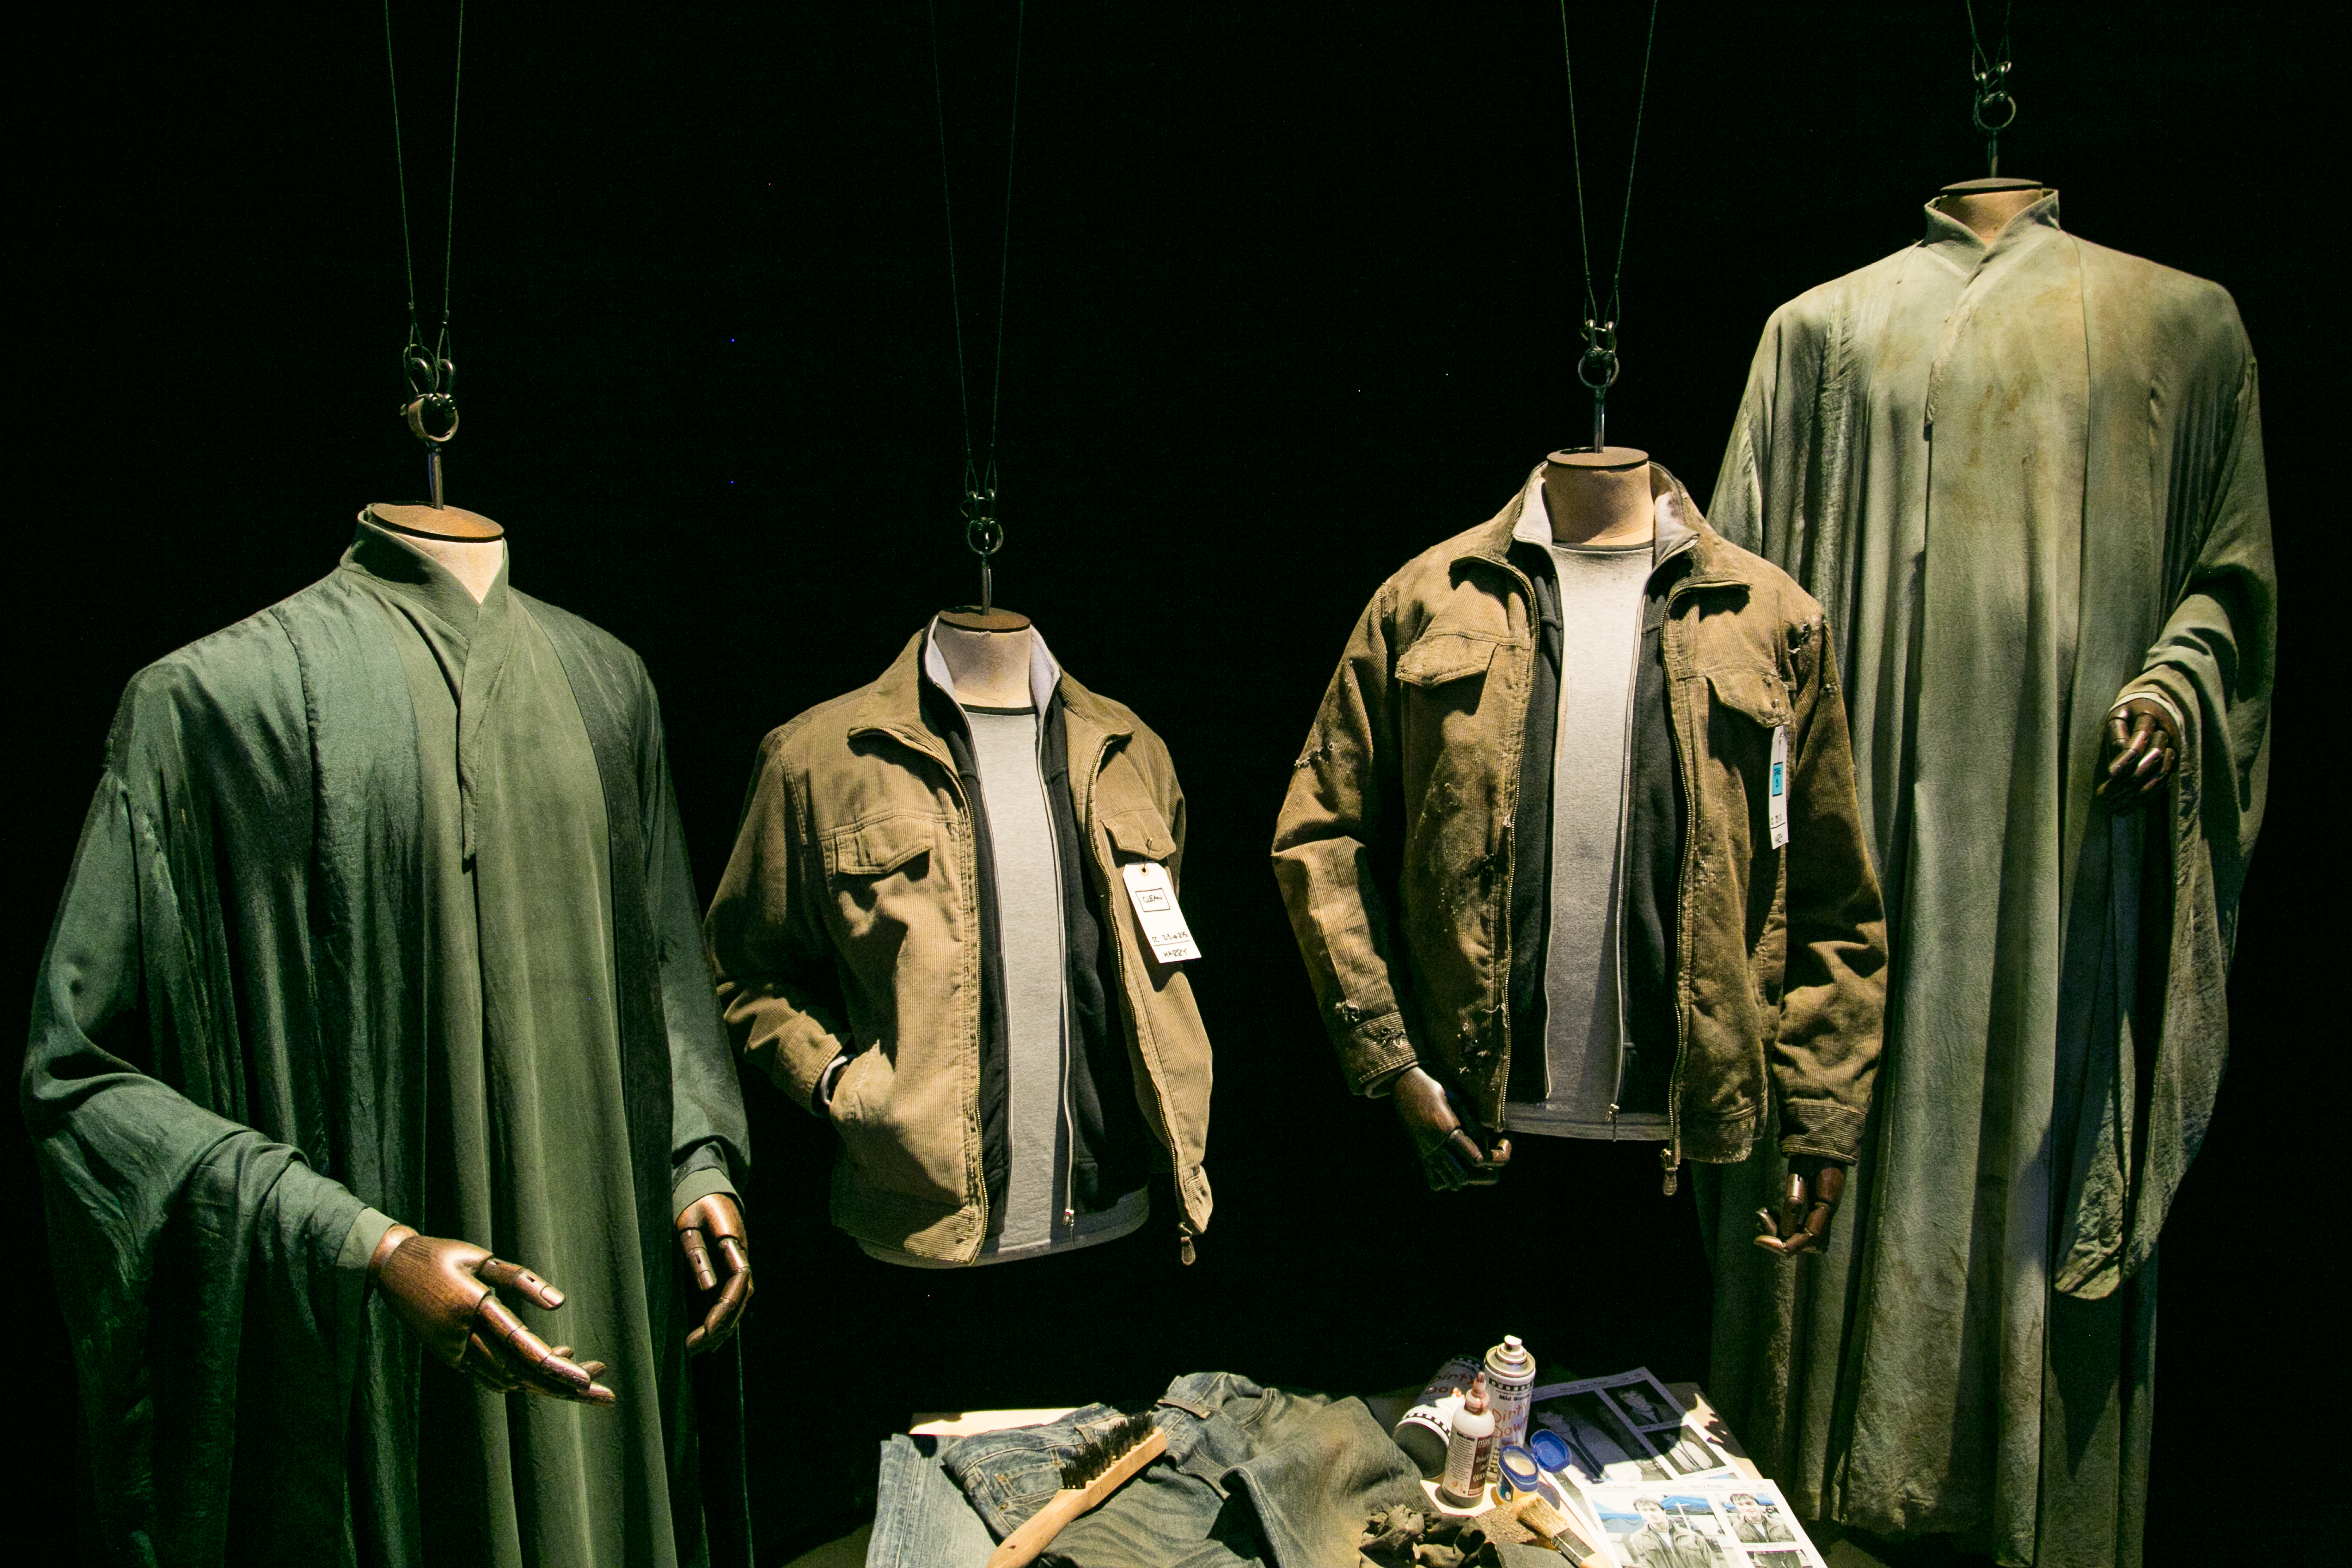 harry-potter-studio-tour-costumes-3